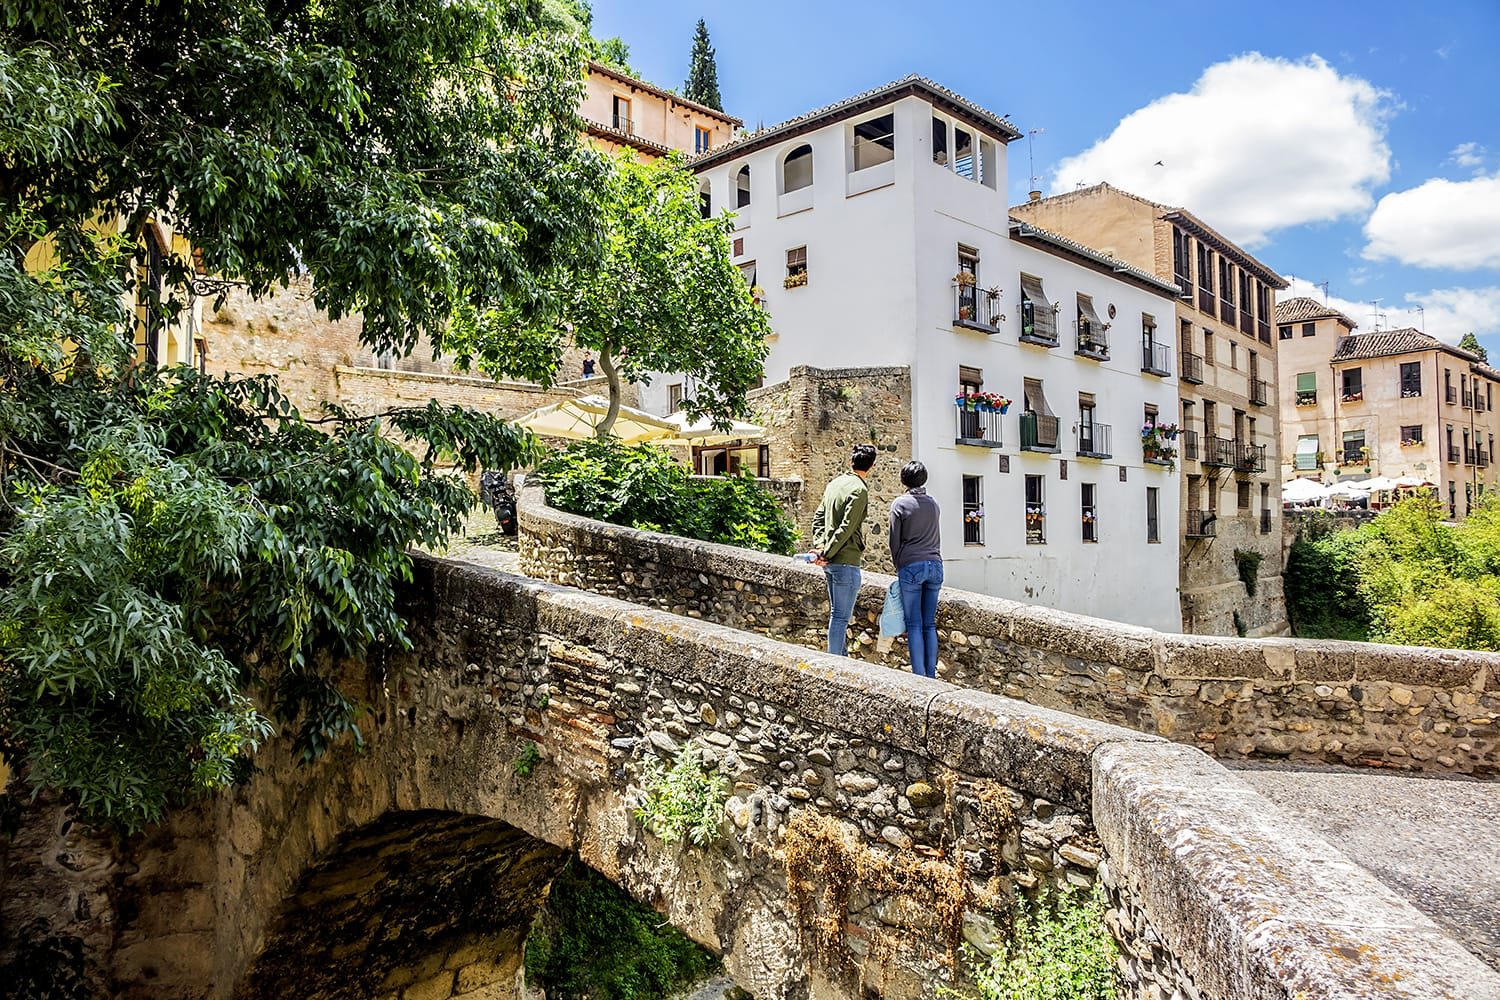 Darro Street (Carrera del Darro) is one of the most scenic walks in Granada, Spain